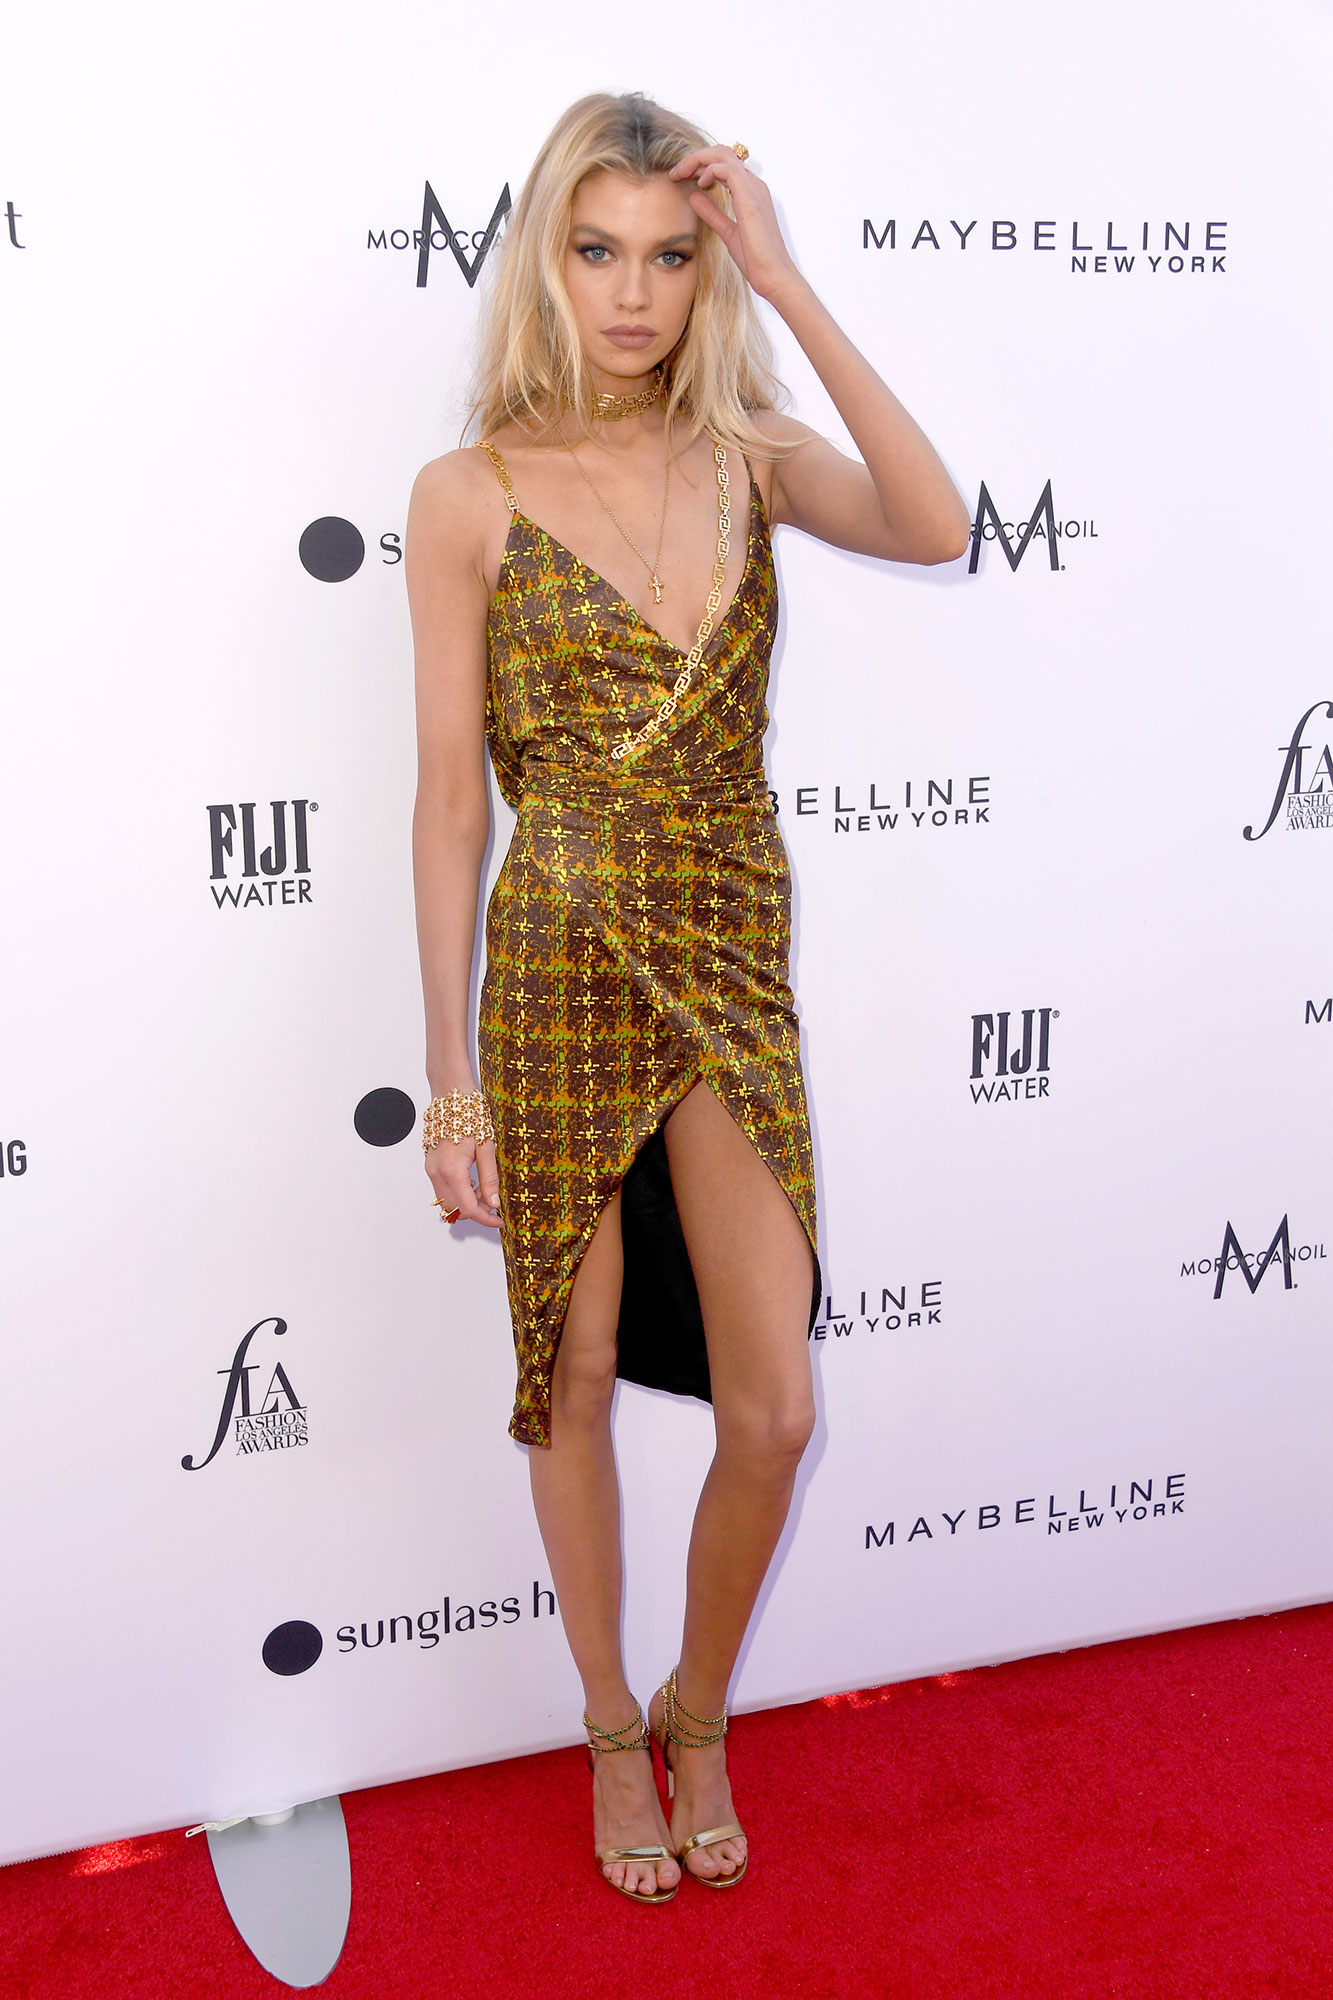 Stars Brought Their Style A-Game to the Daily Front Row Fashion Awards - Showing off her long limbs, the Max Factor model looked sophisticated and sexy in a slinky tweed minidress.